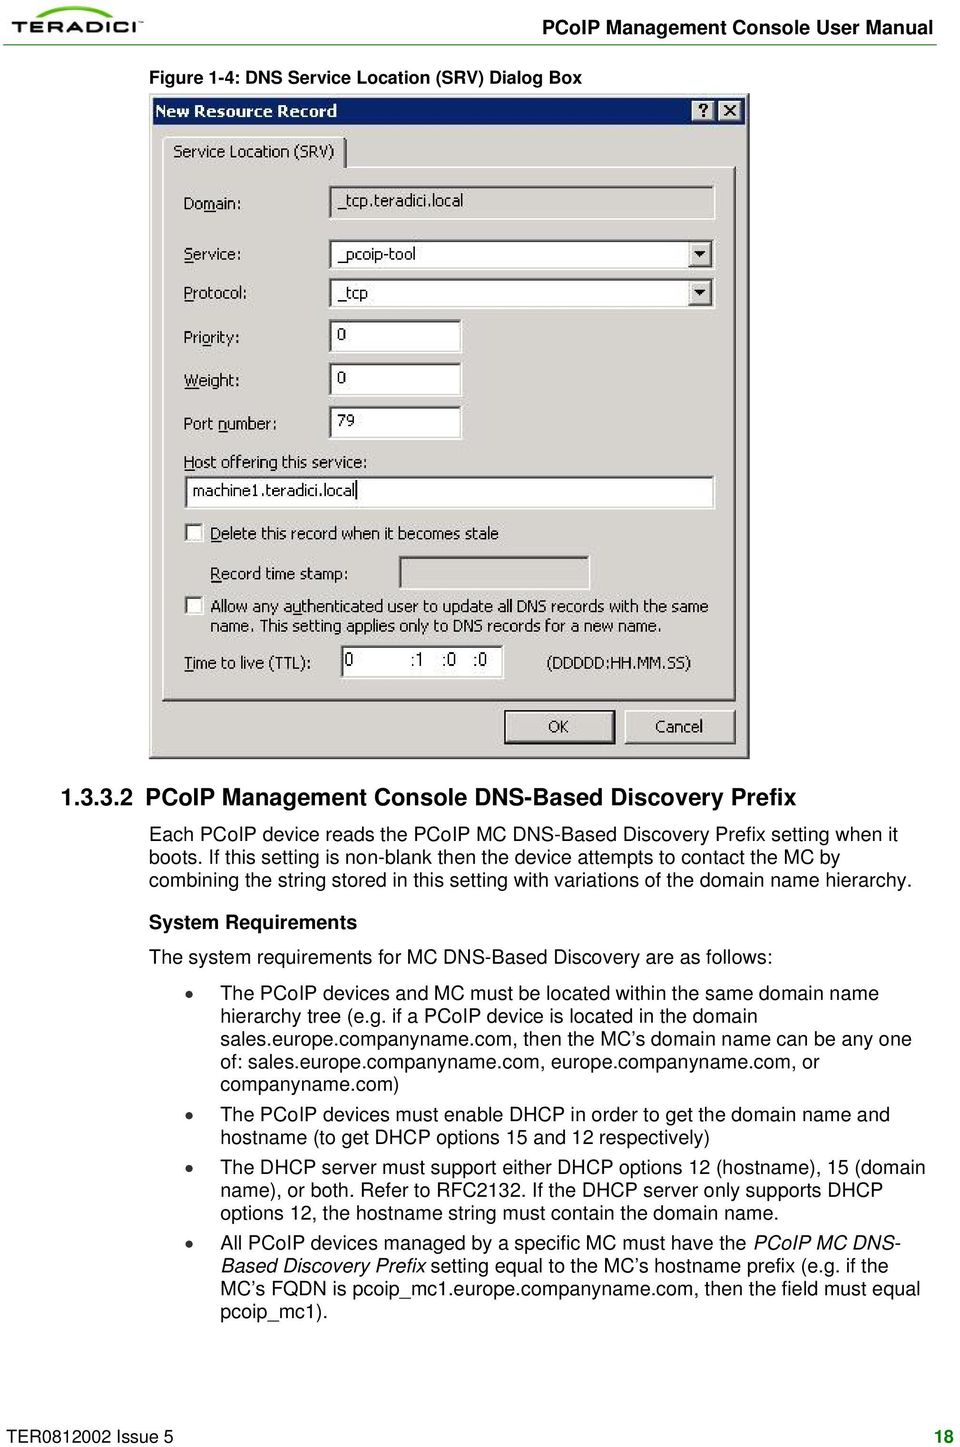 PCoIP Management Console User Manual  TER Issue 5 - PDF